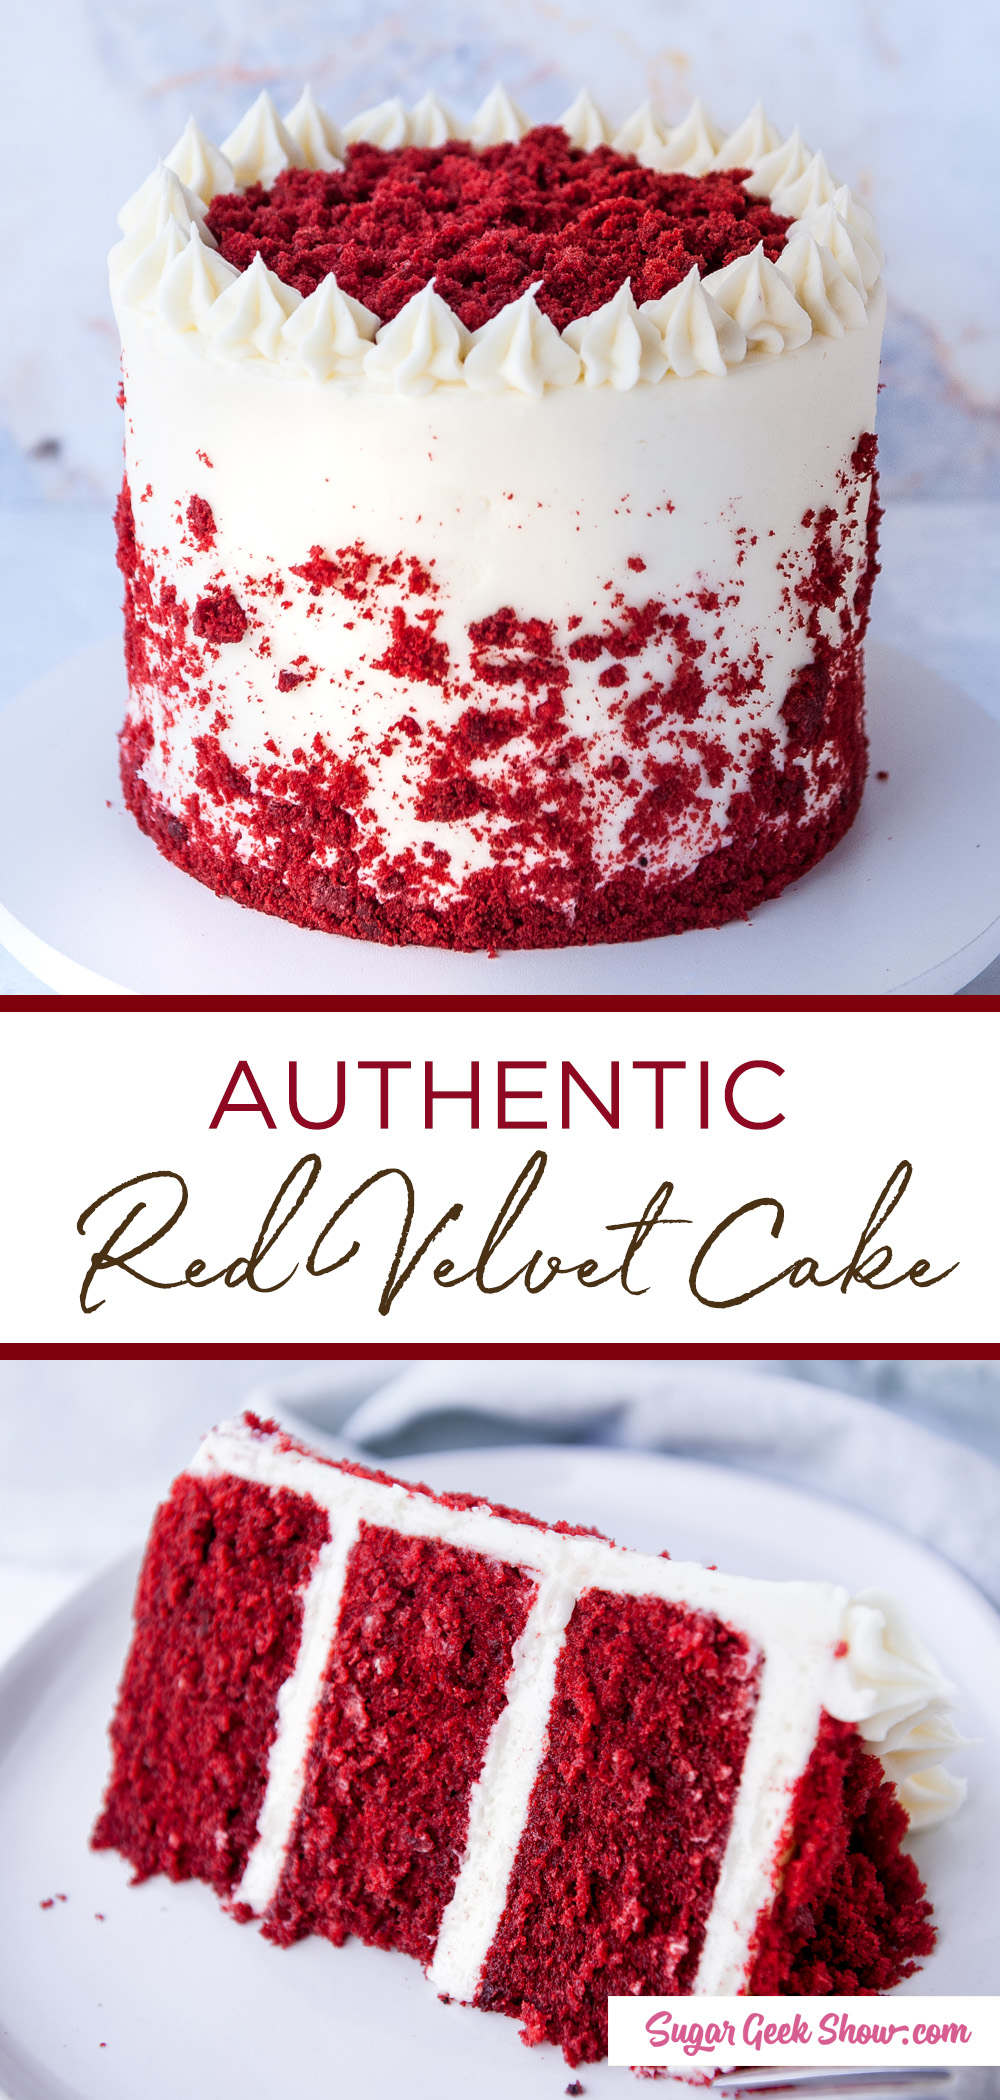 Classic red velvet cake recipe + cream cheese frosting | Sugar Geek Show